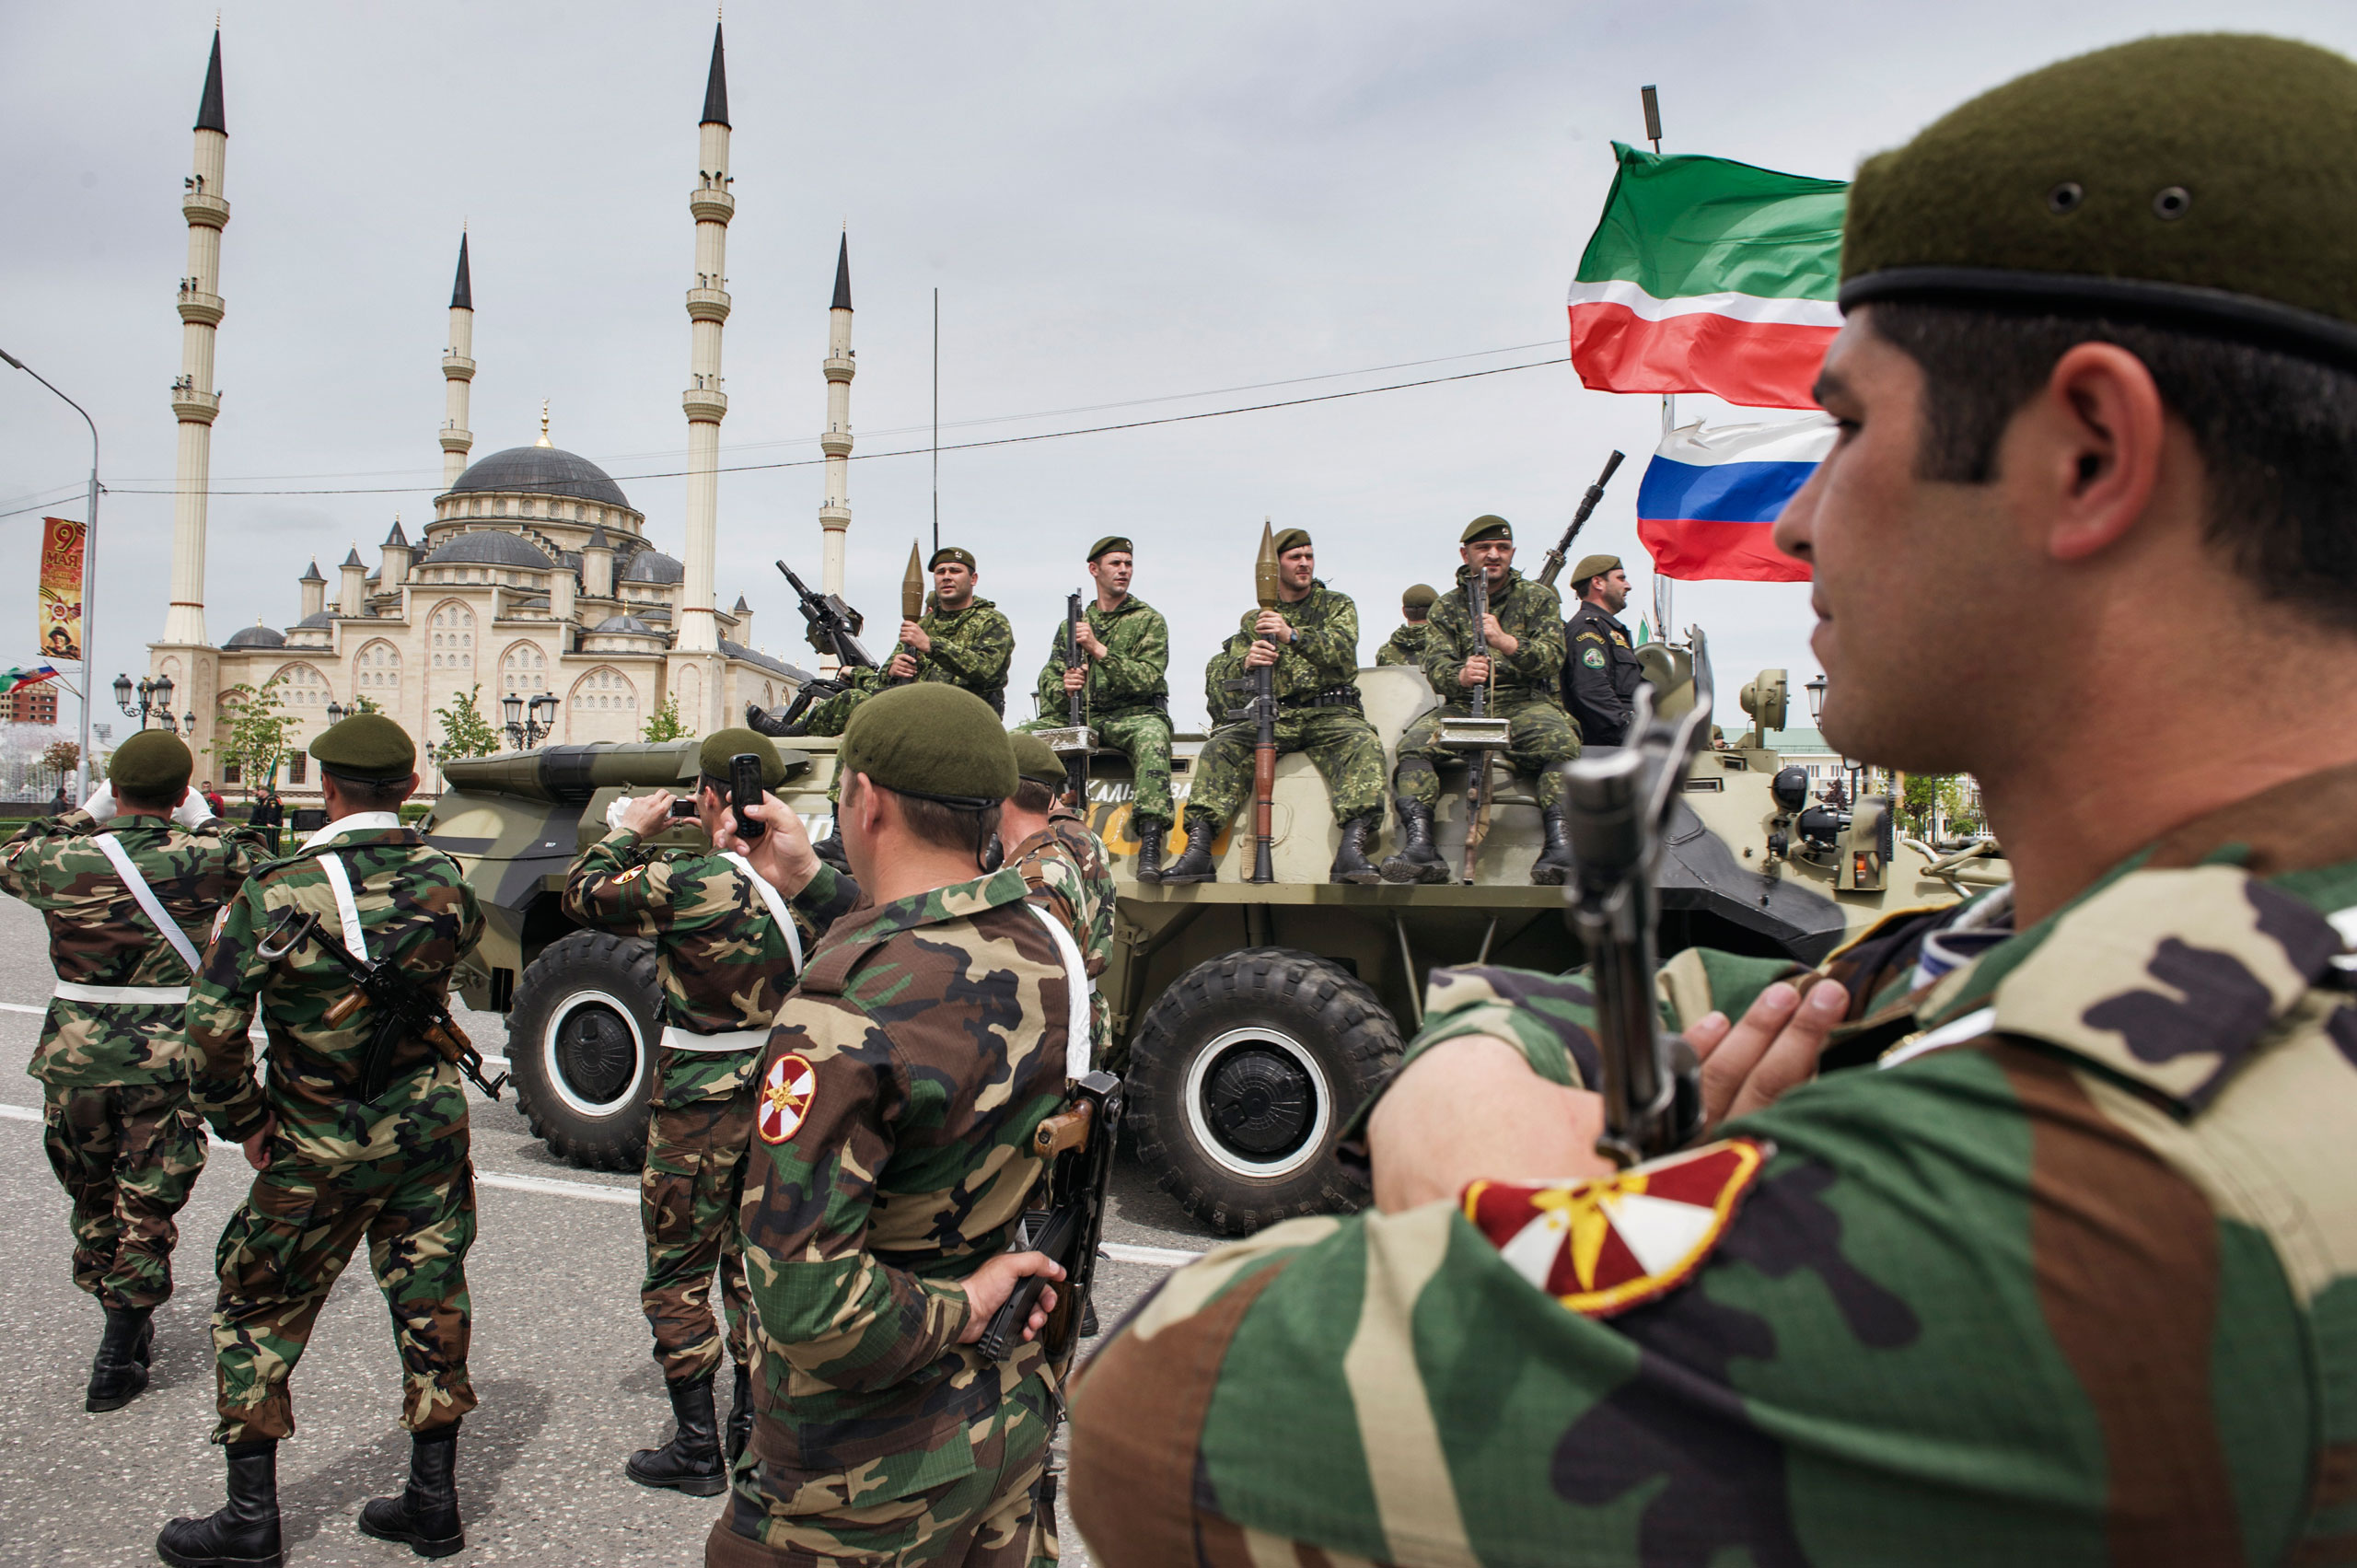 Chechen security forces participate in a military parade marking the Soviet victory in World War II, Grozny, Chechnya,  May 2010.